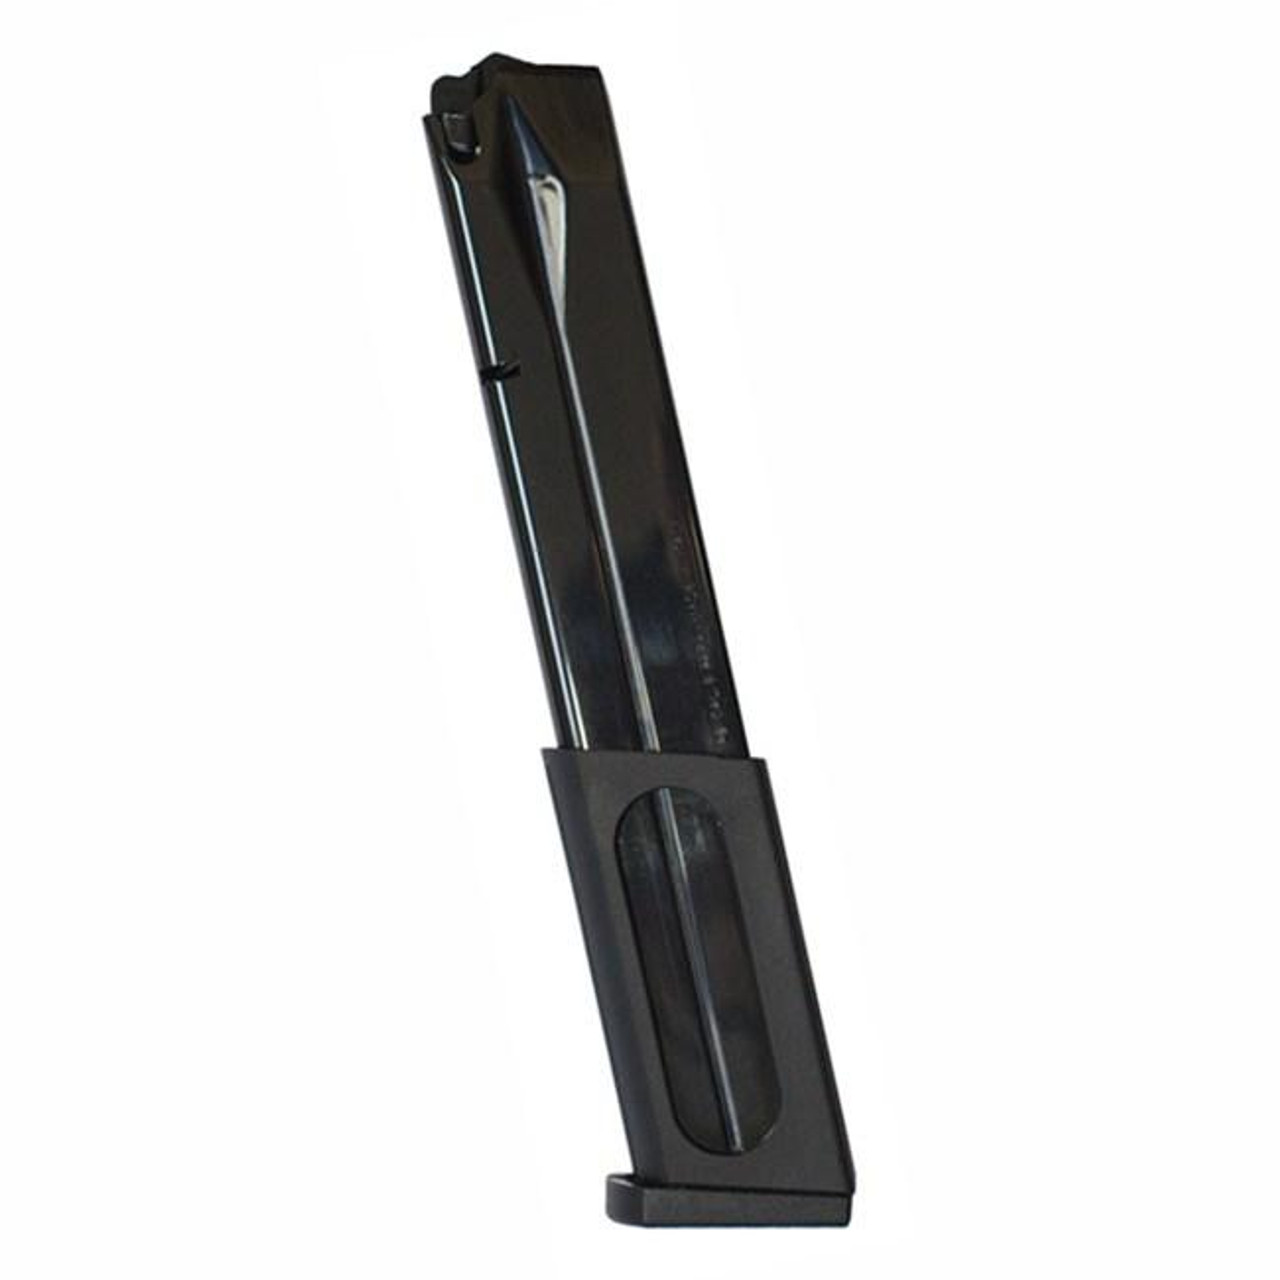 Beretta - 92FS/M9/CX4 9mm Magazine - 10/30 Rounds